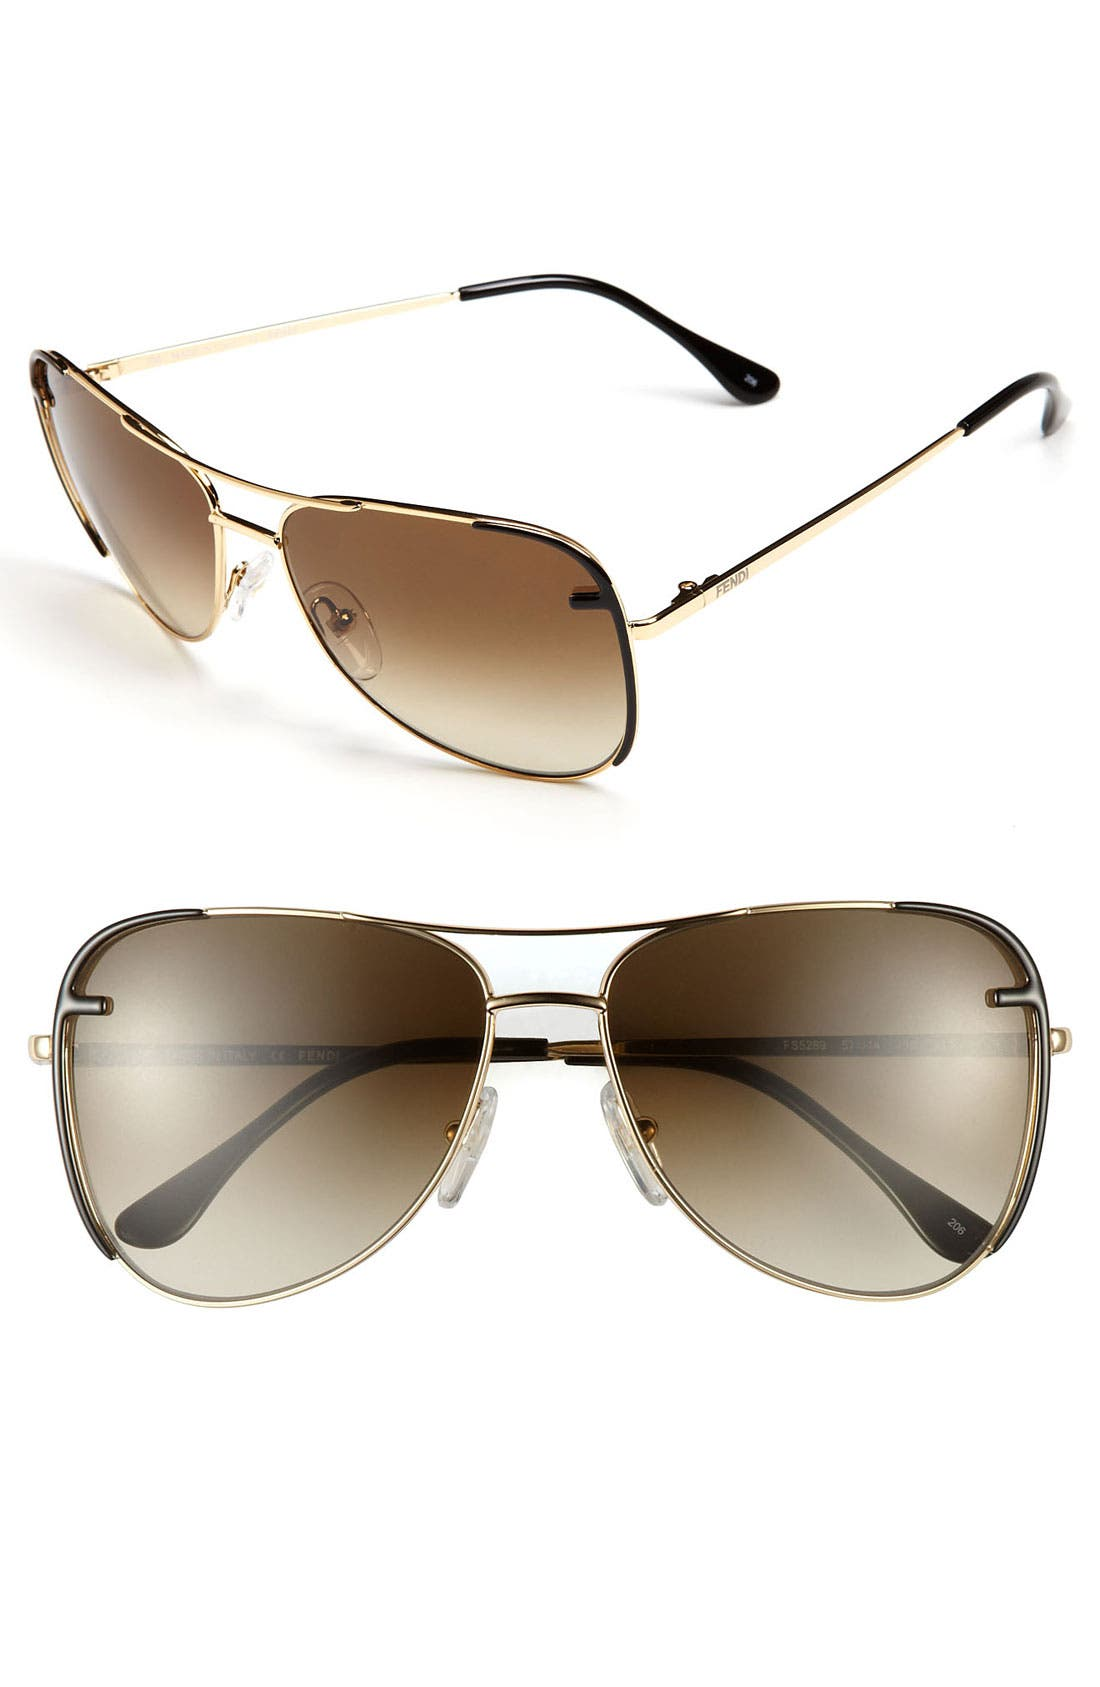 Alternate Image 1 Selected - Fendi 57mm Metal Aviator Sunglasses